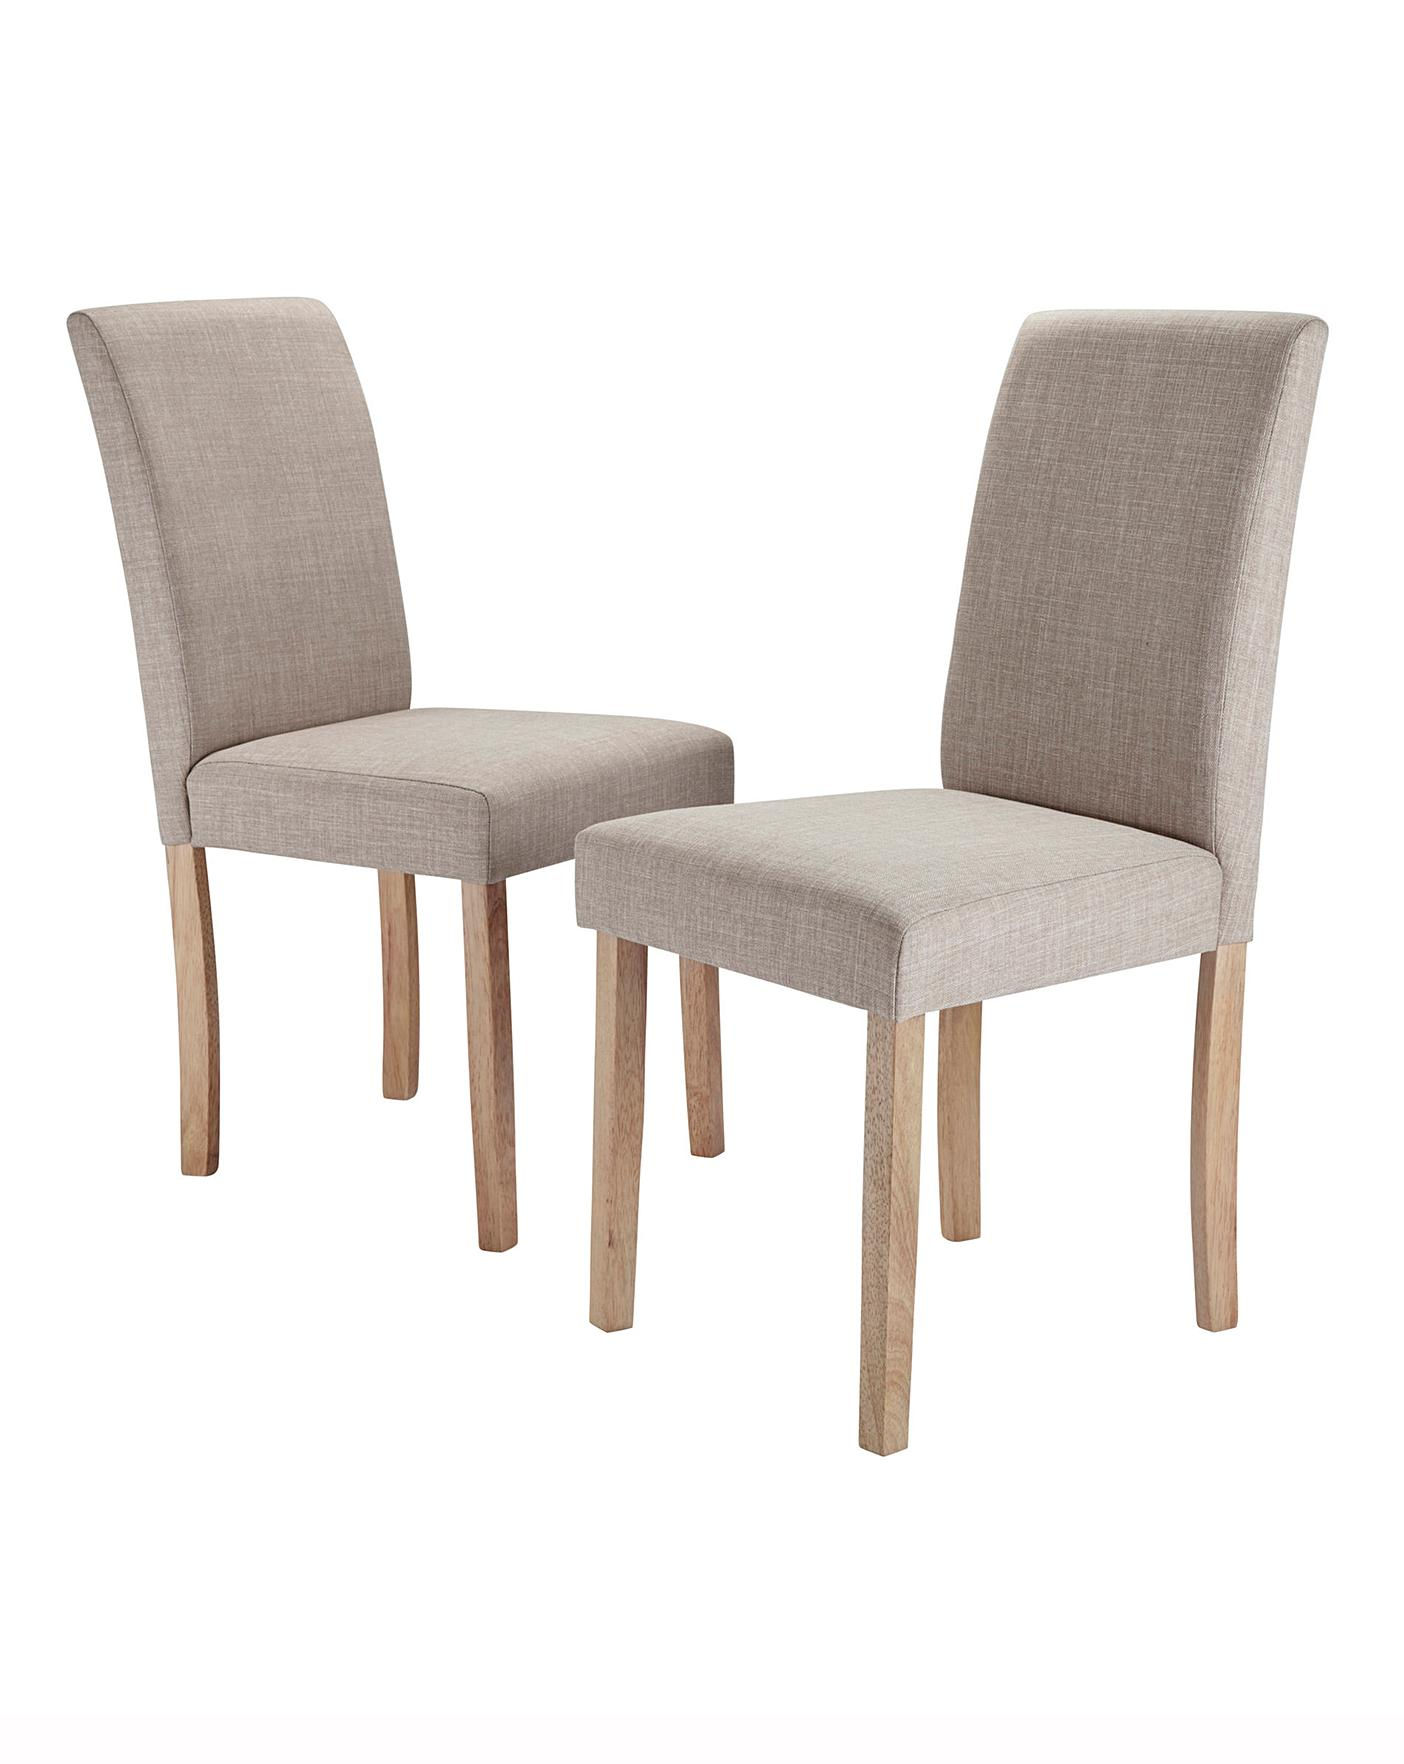 mia fabric pair of dining chairs  j d williams